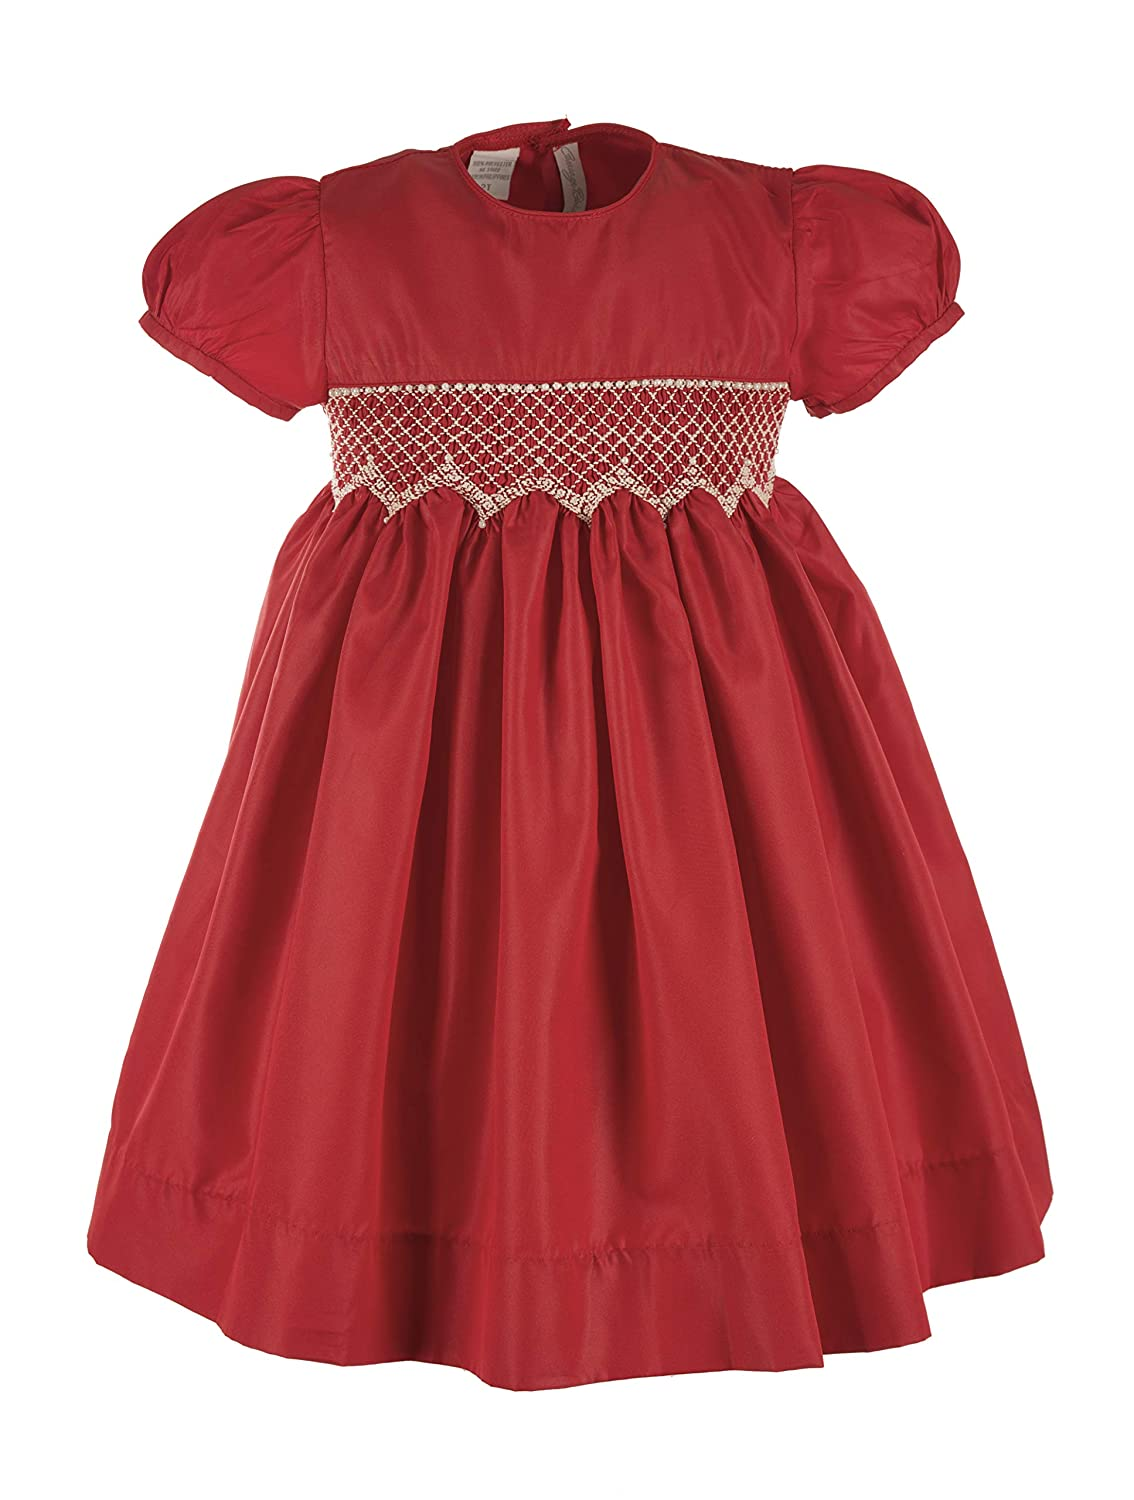 Vintage Style Children's Clothing: Girls, Boys, Baby, Toddler Carriage Boutique Girls Red Christmas Holiday Dress Hand Smocked $60.00 AT vintagedancer.com